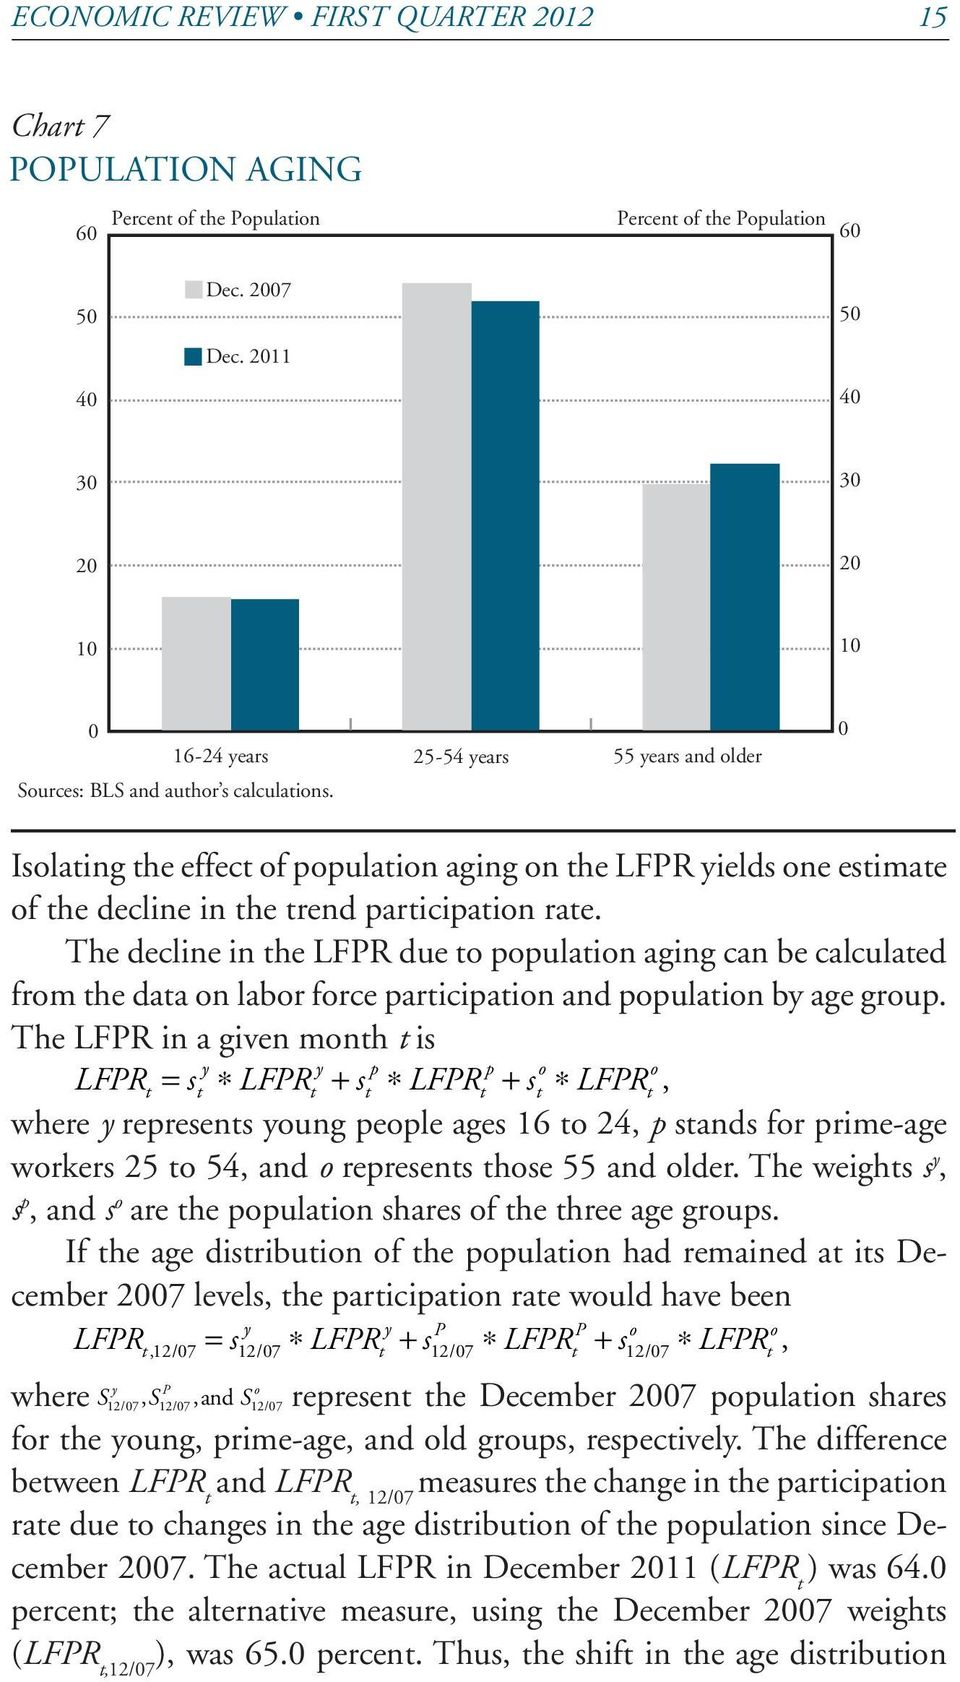 0 Isolating the effect of population aging on the LFPR yields one estimate of the decline in the trend participation rate.